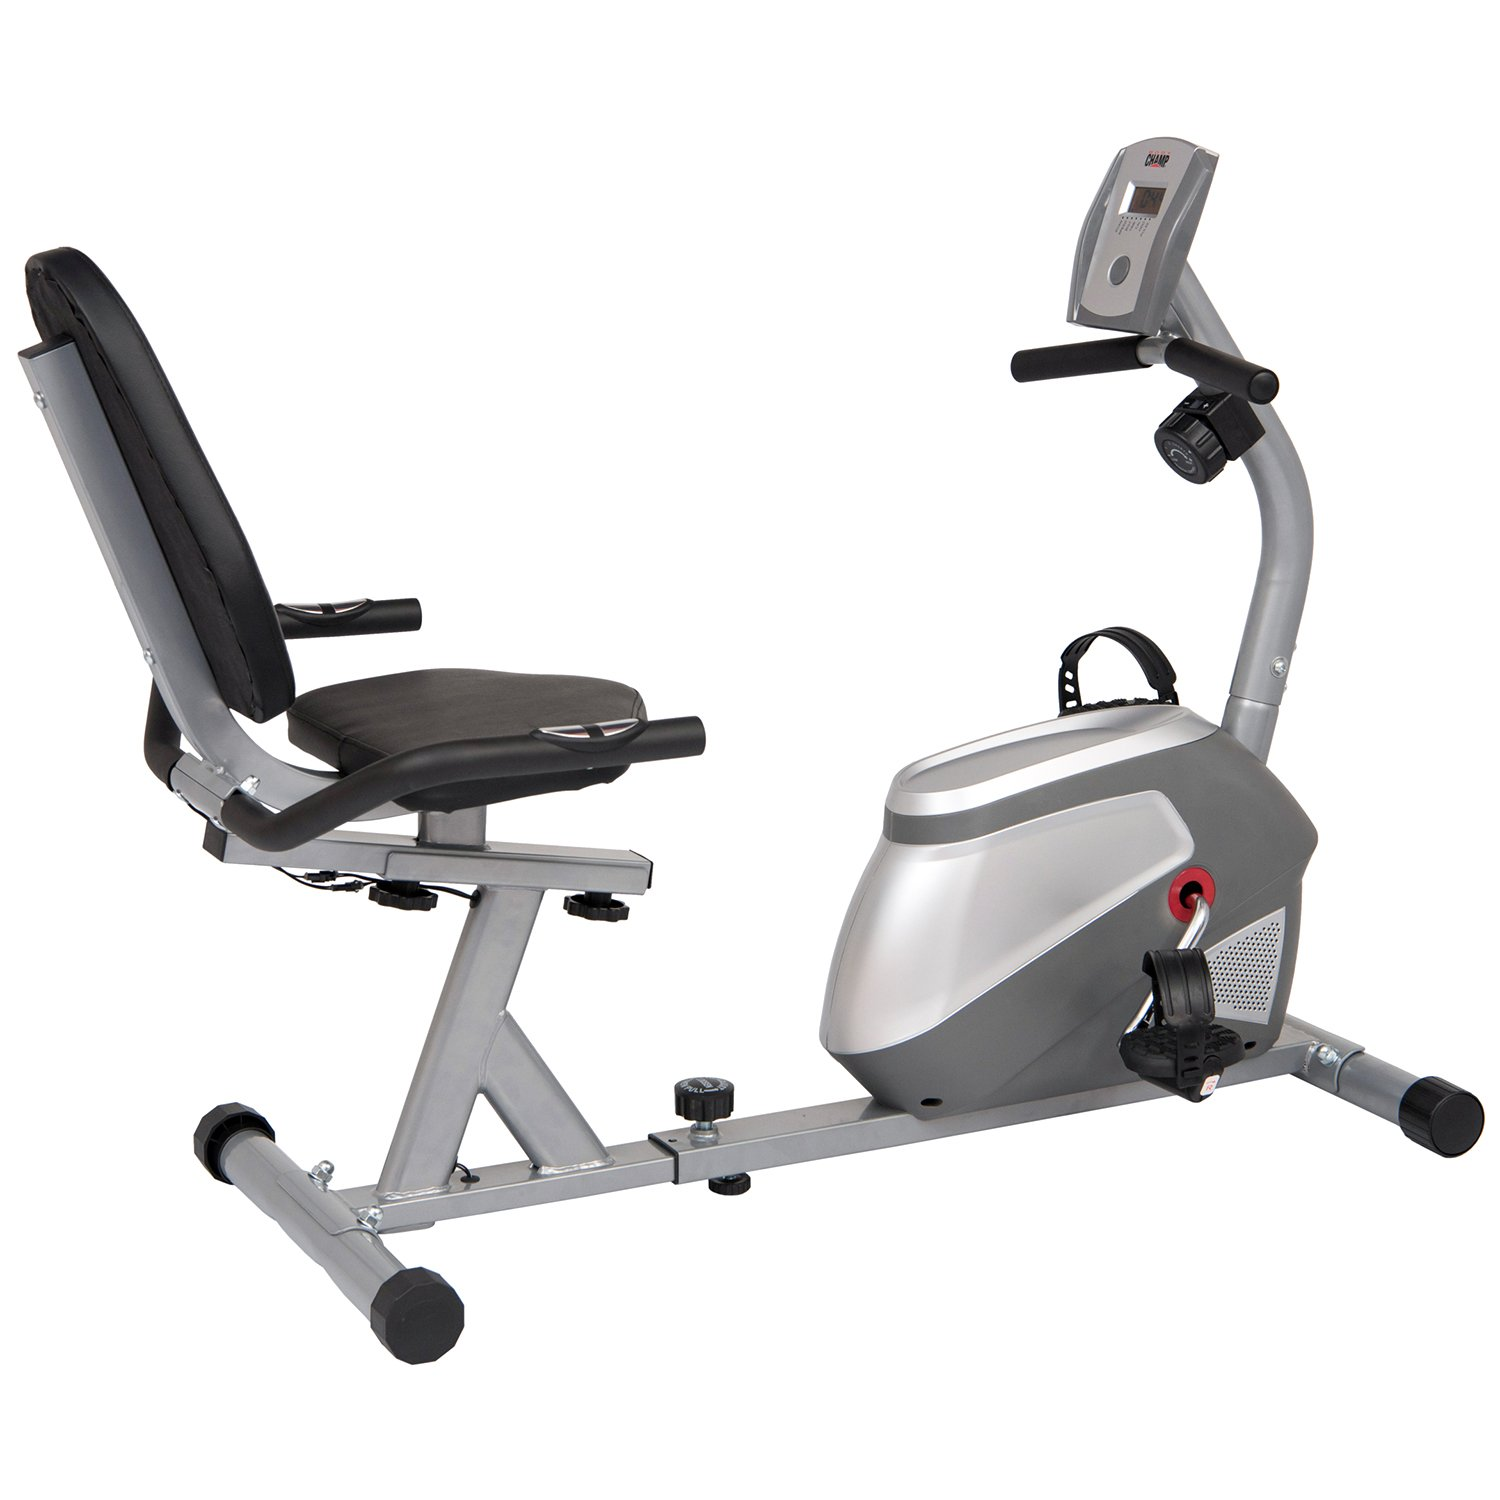 Body Champ BRB852 Magnetic Recumbent Exercise Bike User Friendly, Black/Silver, One Size